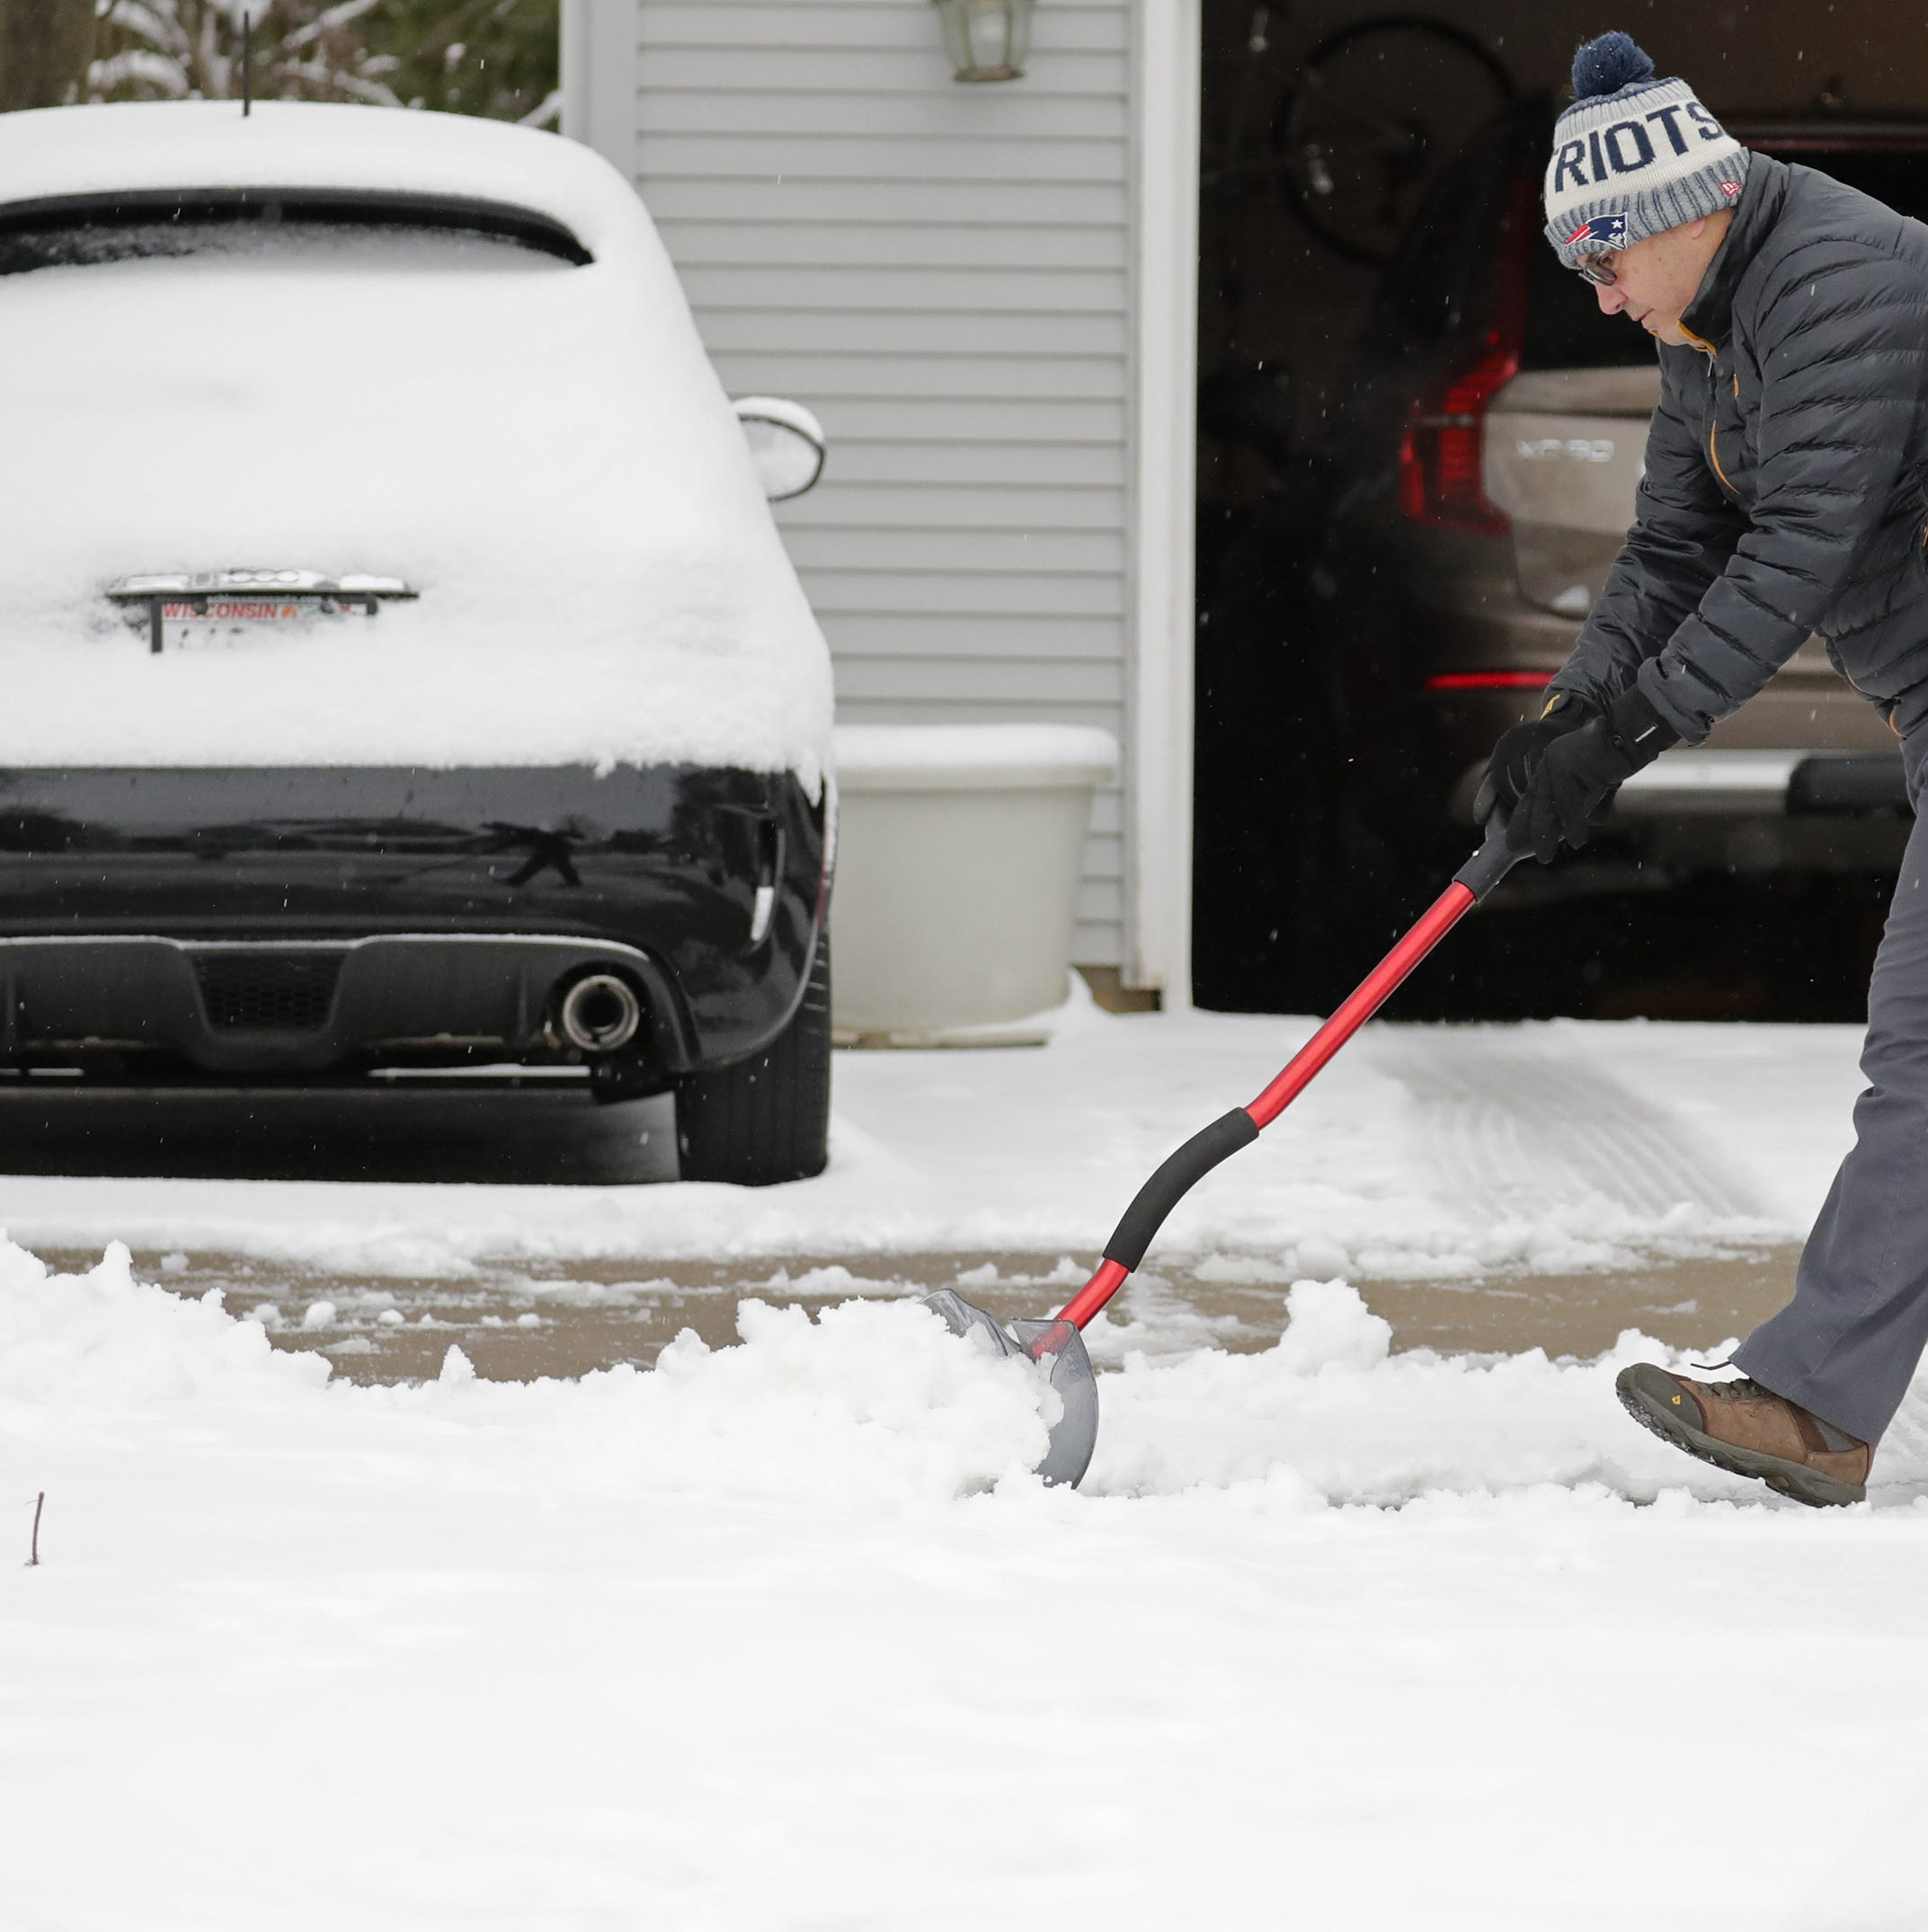 To cope with another spring snowstorm, Wisconsin turns to jokes and memes